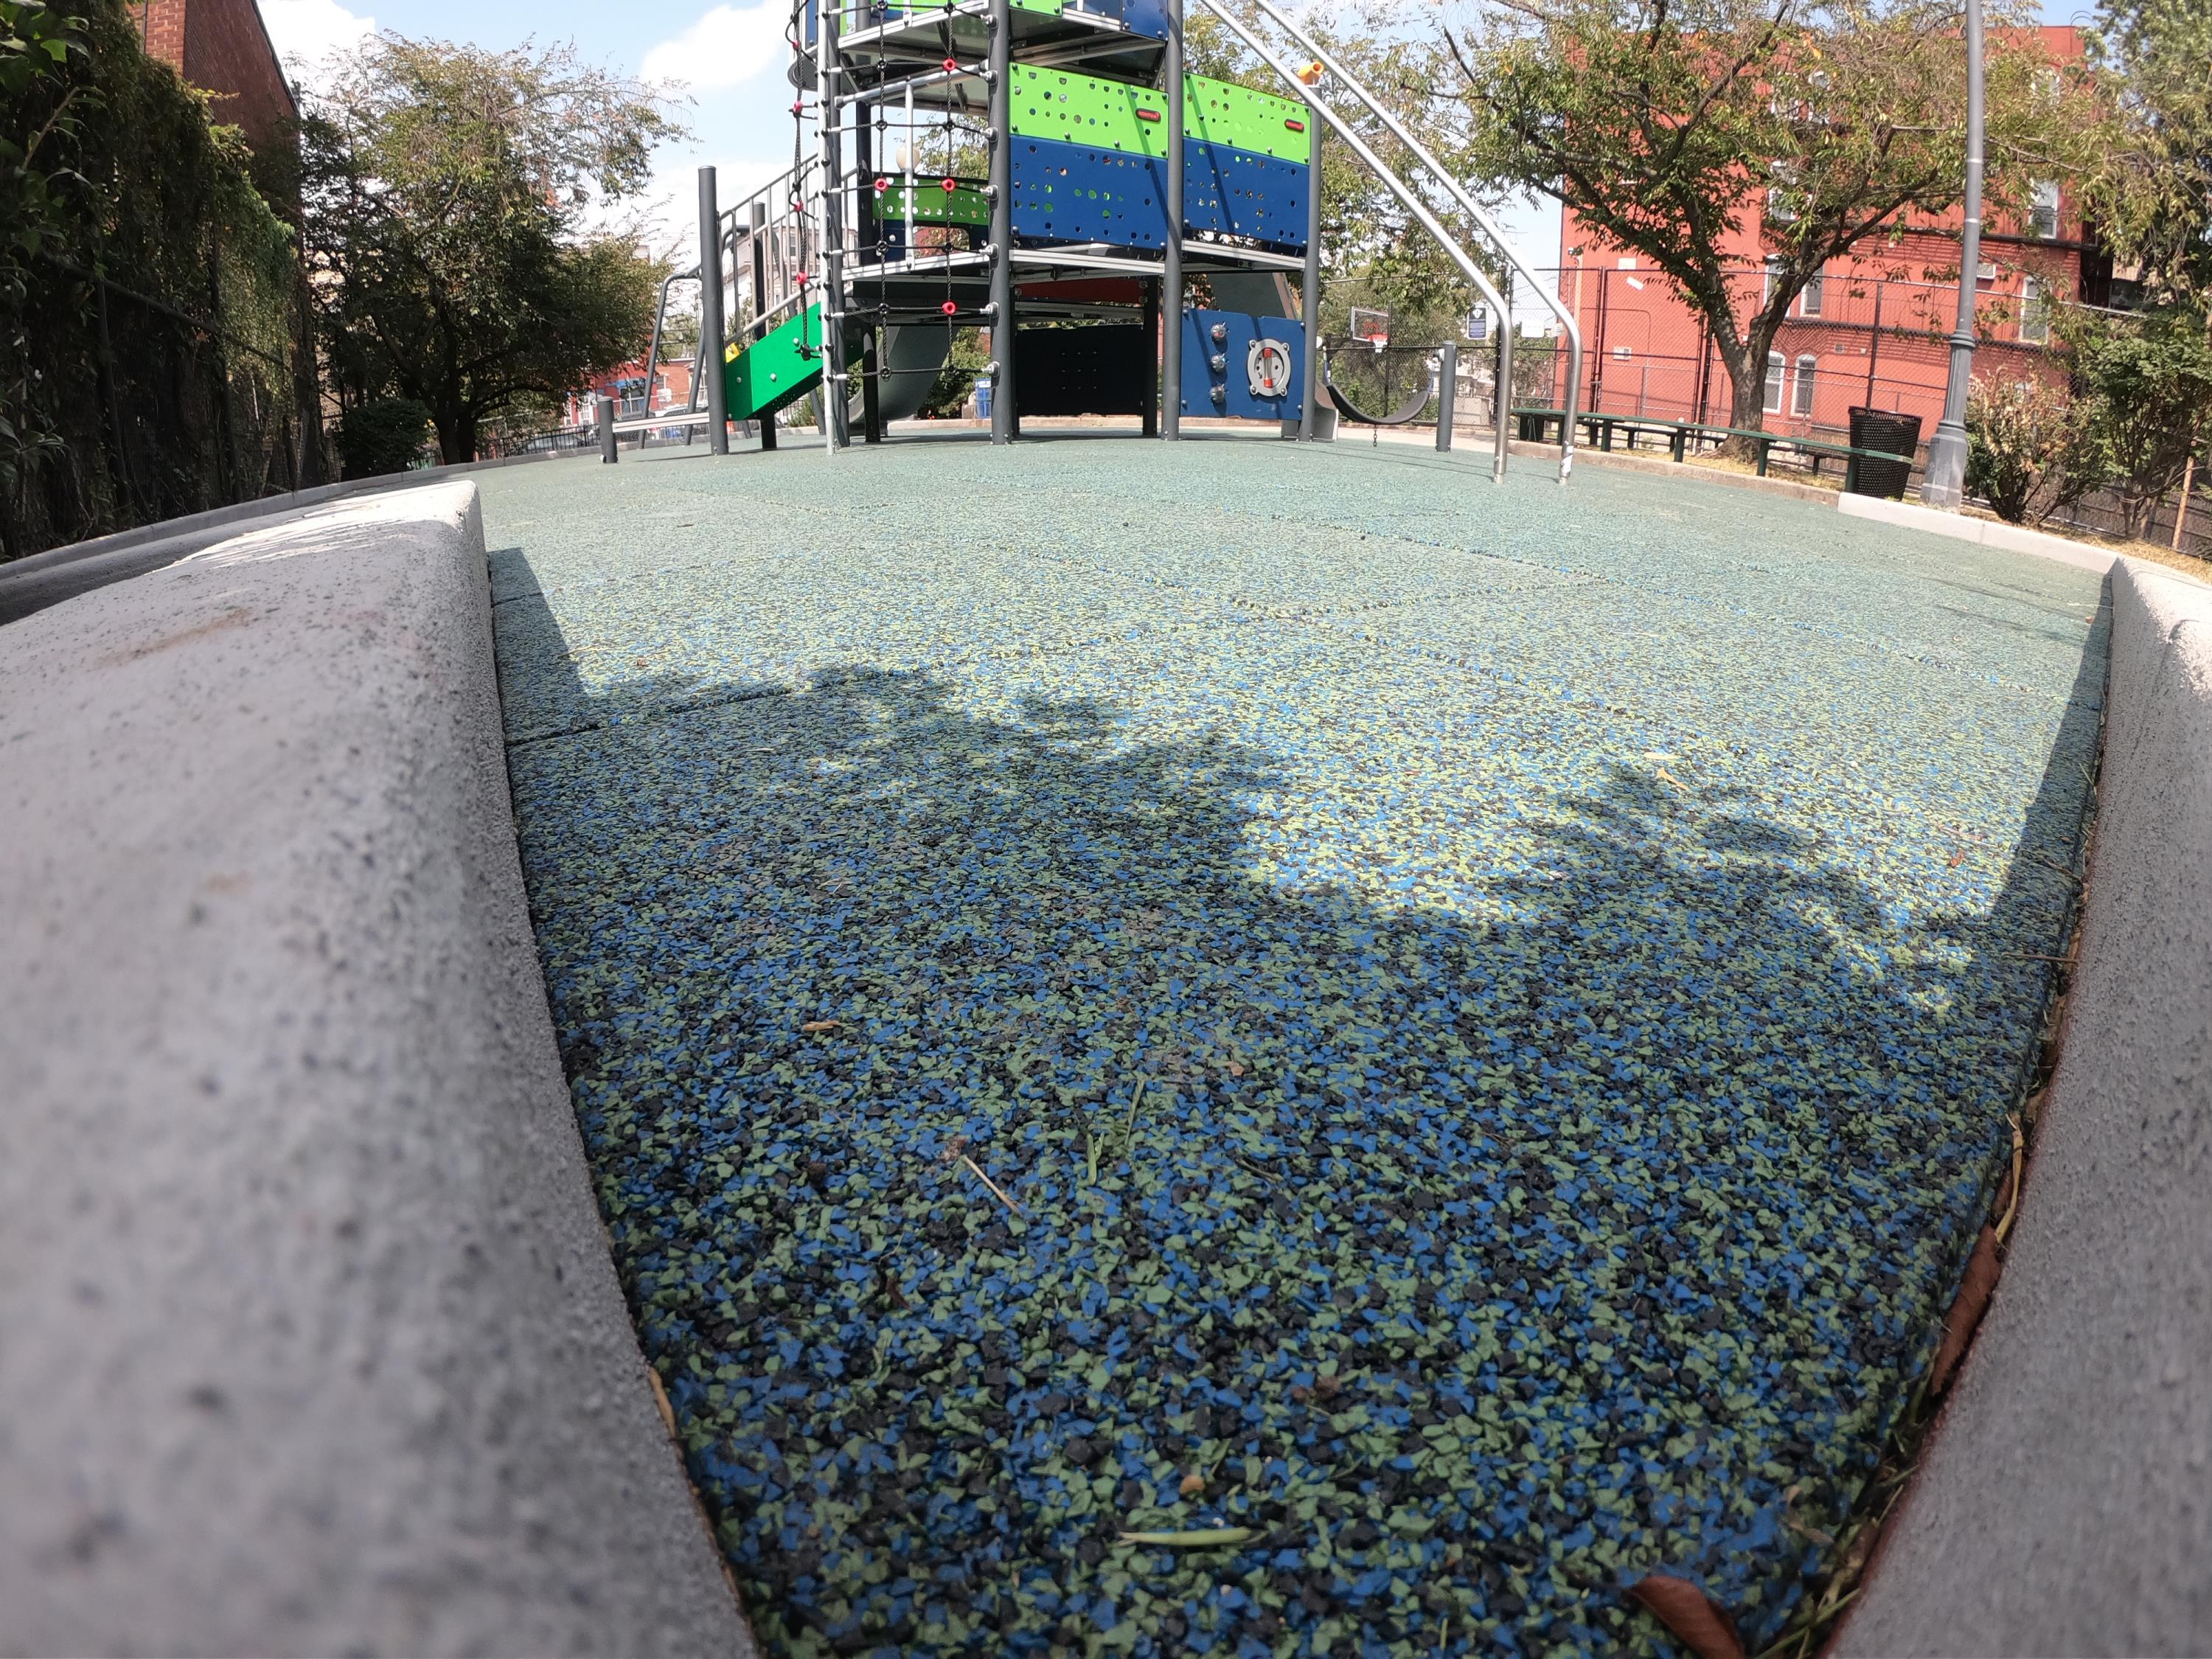 Sgt Anthony Park using Soft-Lands Solid TPV Top Tiles at 45% Green 45% Blue and 10% Black